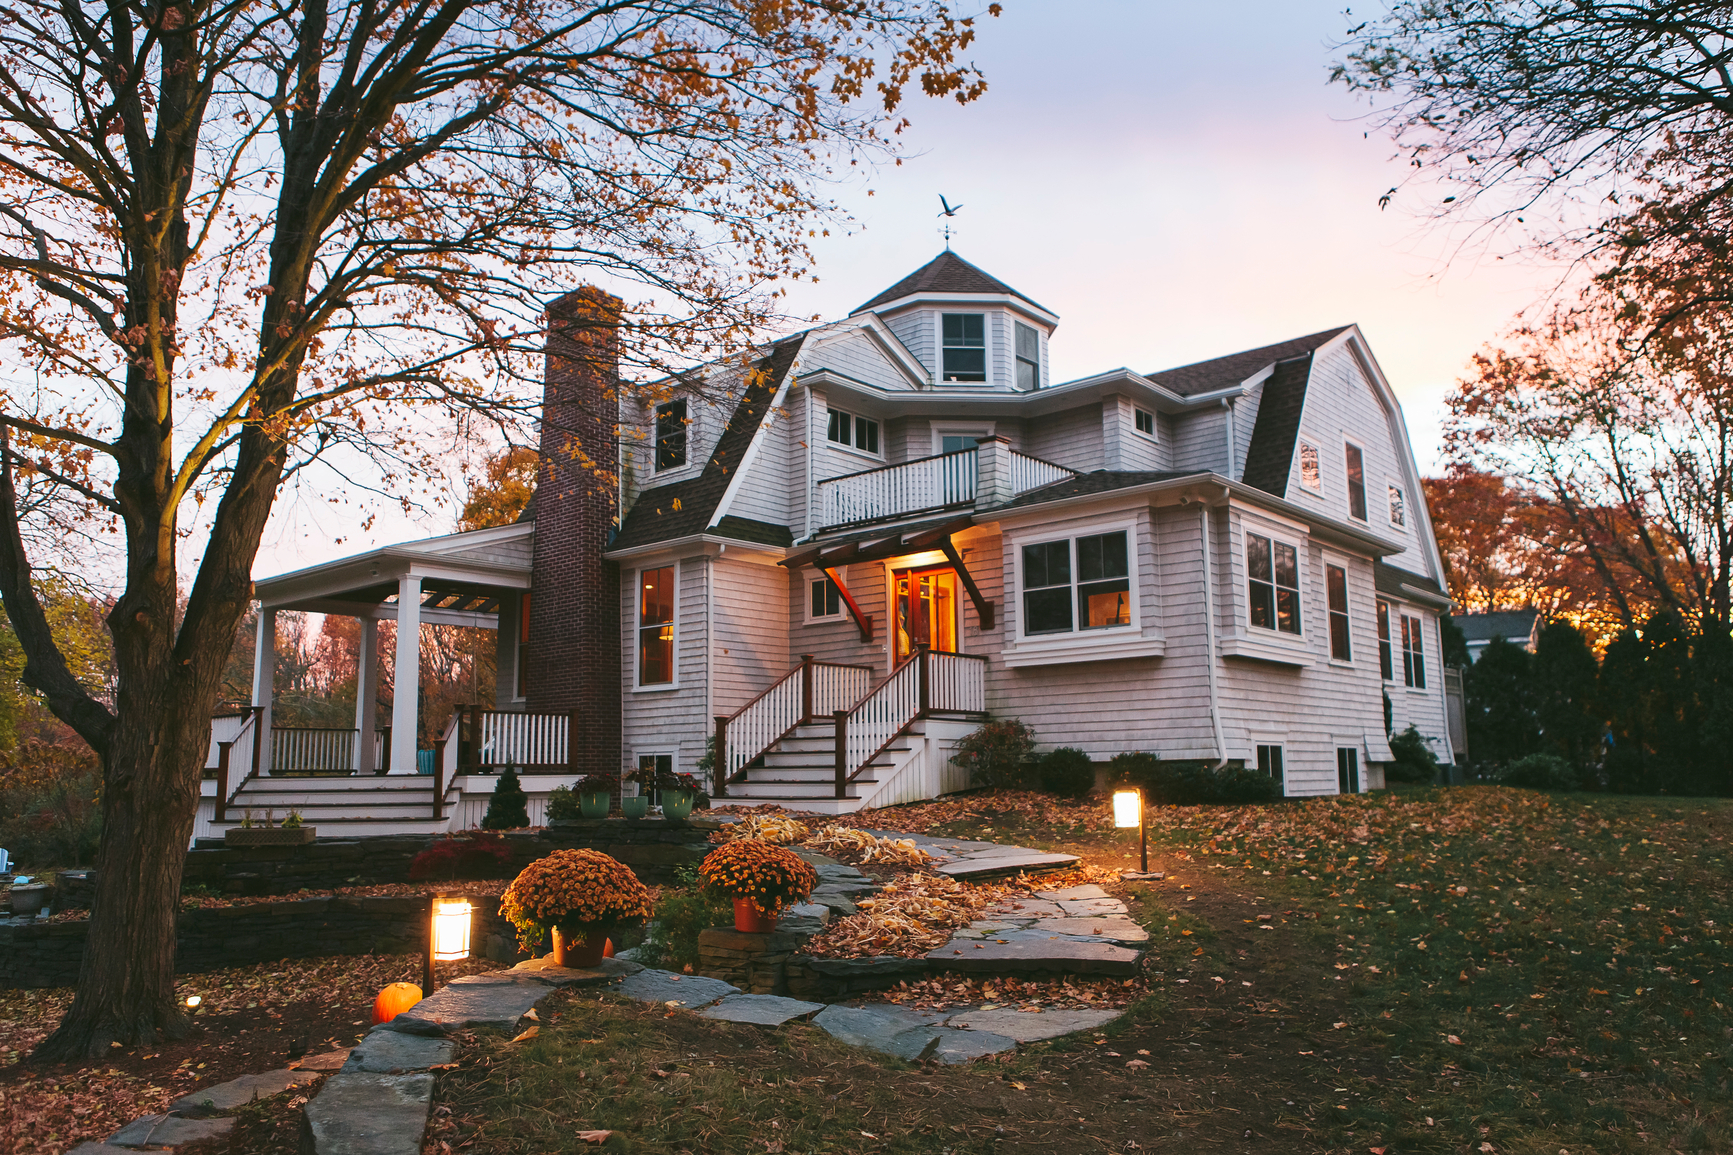 6 Things You Need To Know Before Buying A Historic Home